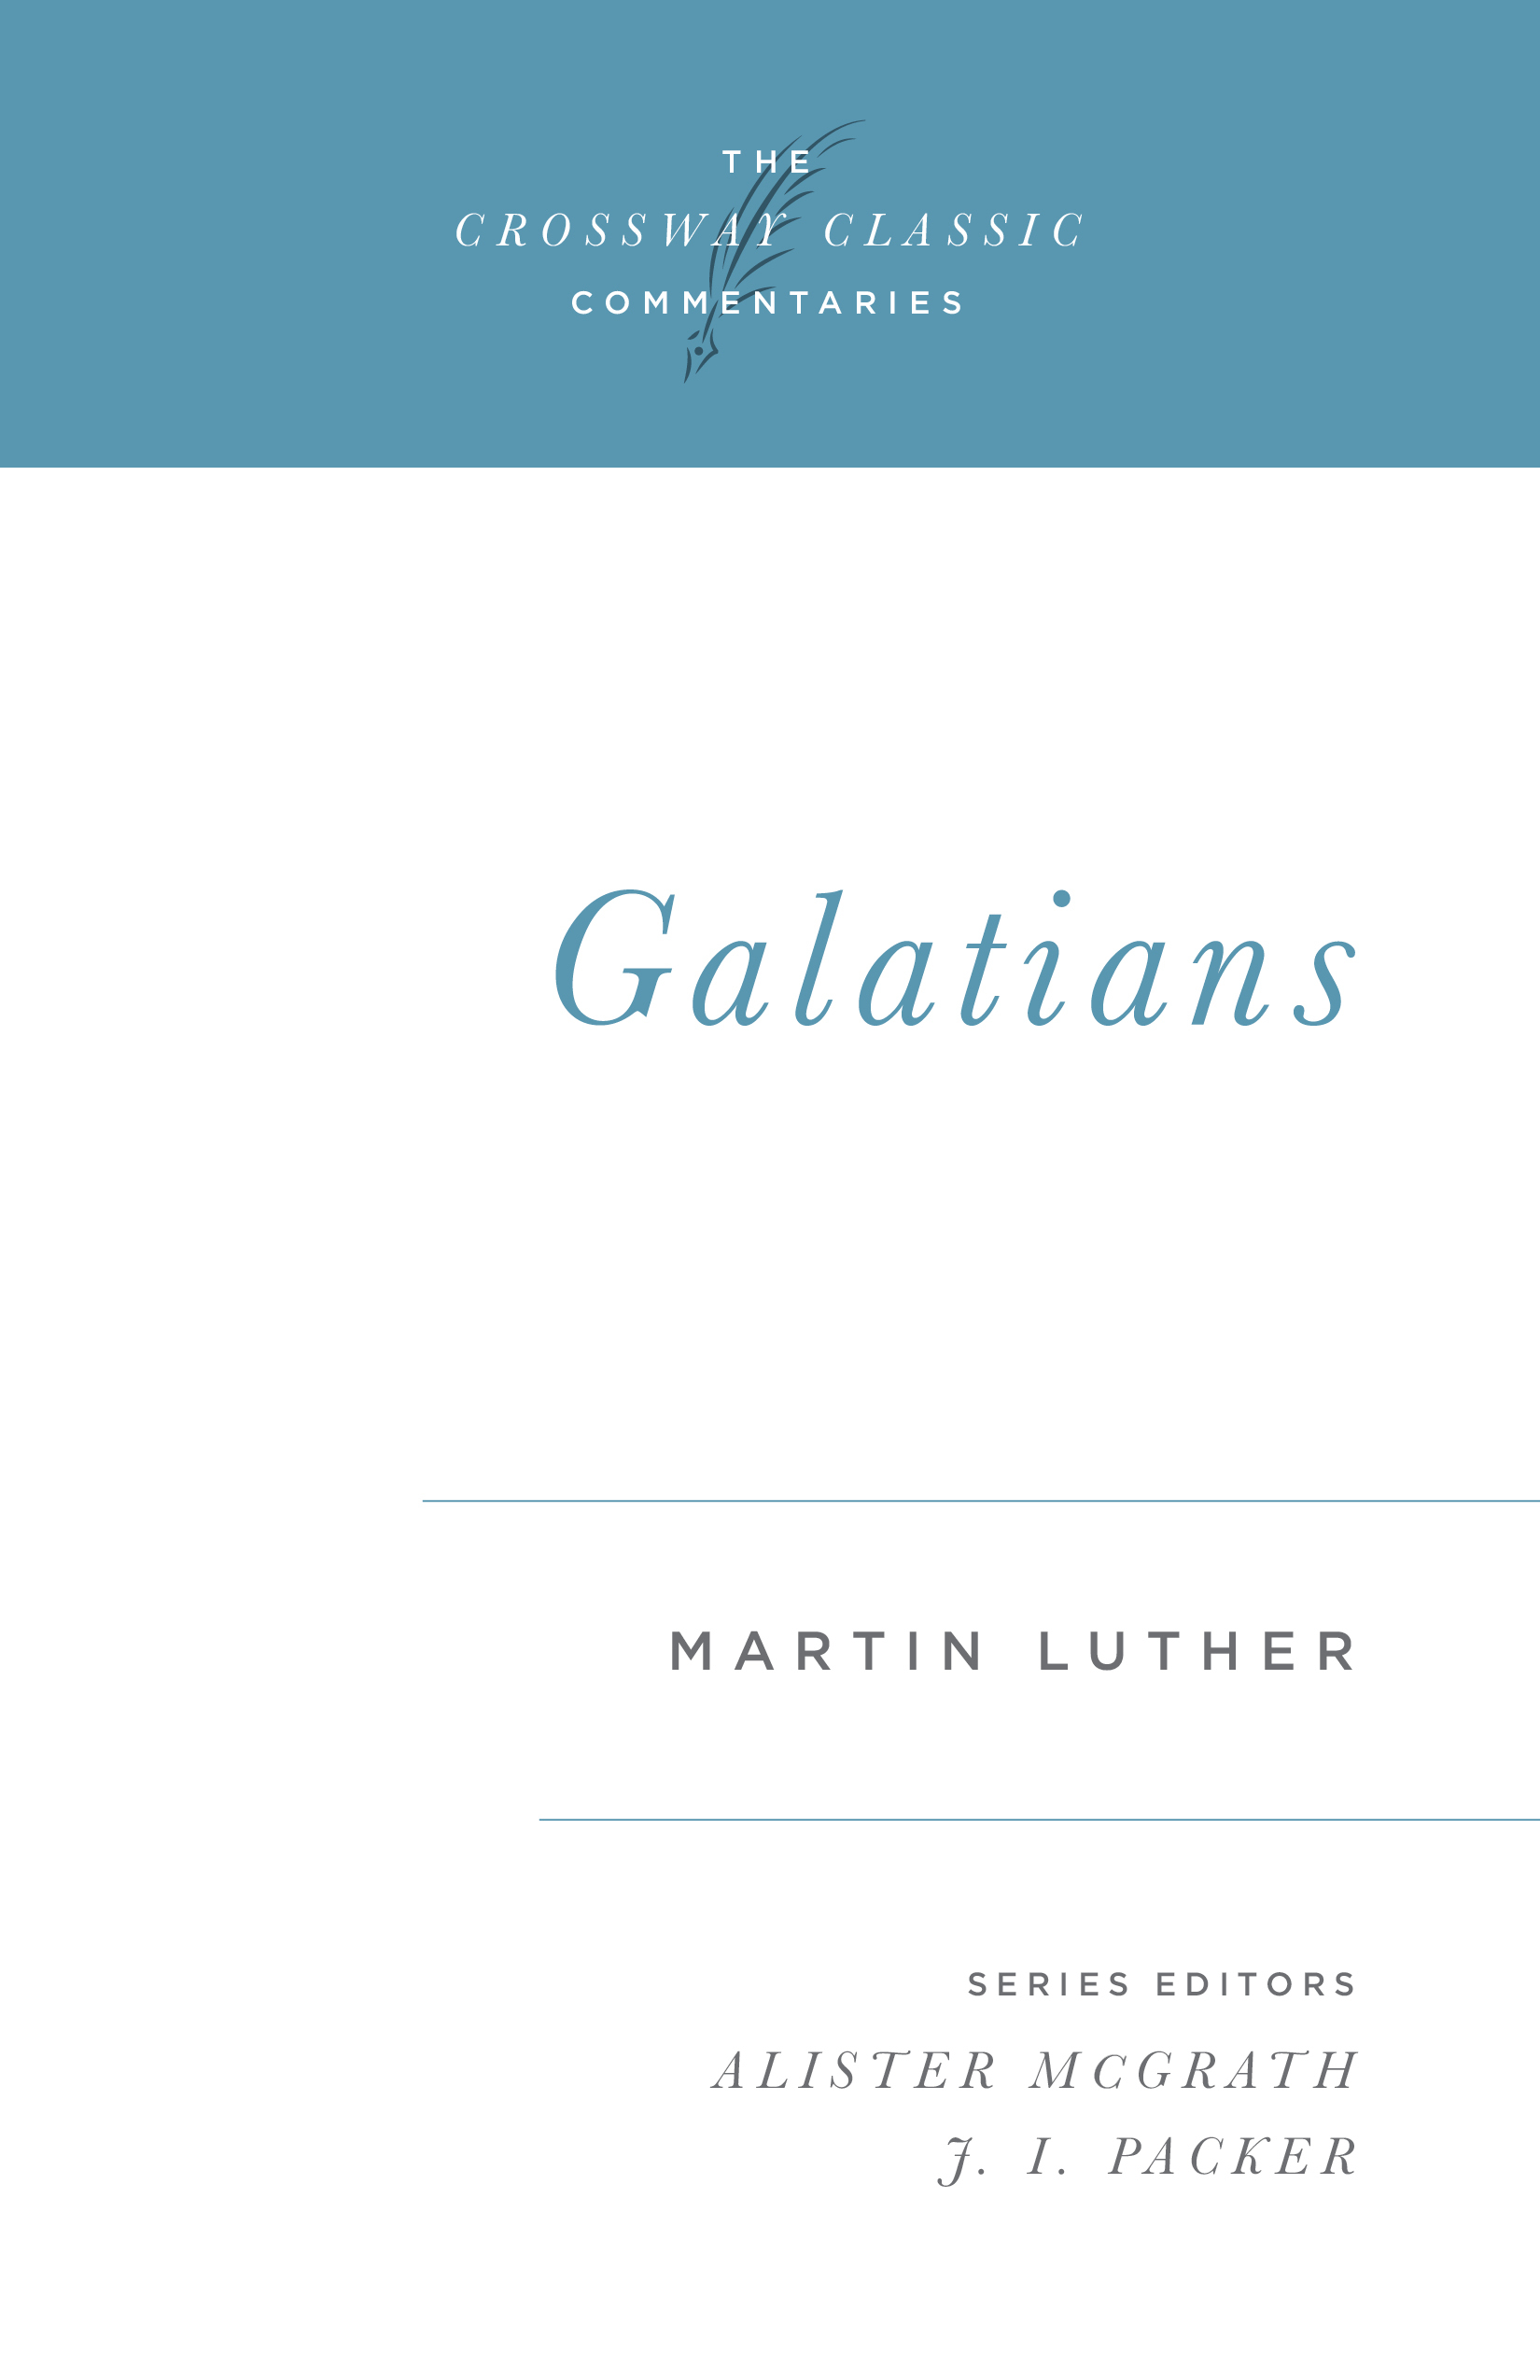 Crossway Classic Commentary - Galatians